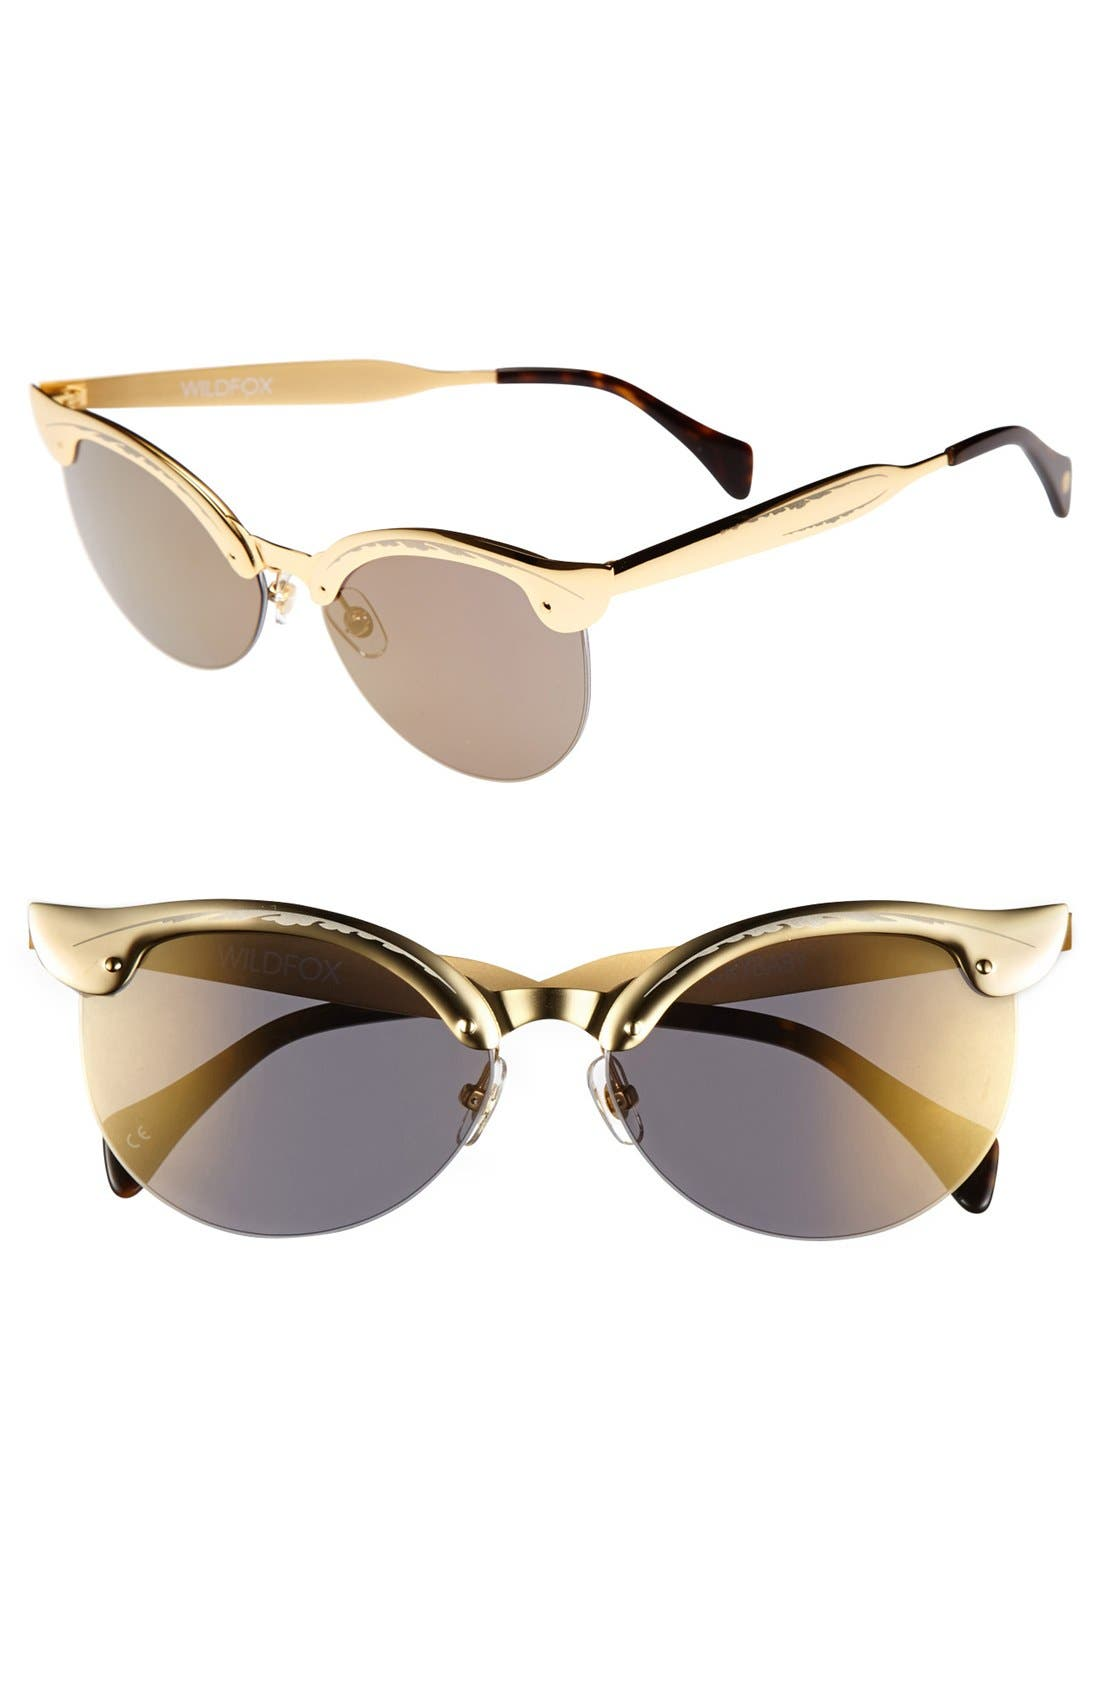 Main Image - Wildfox 'Crybaby Deluxe' 57mm Sunglasses